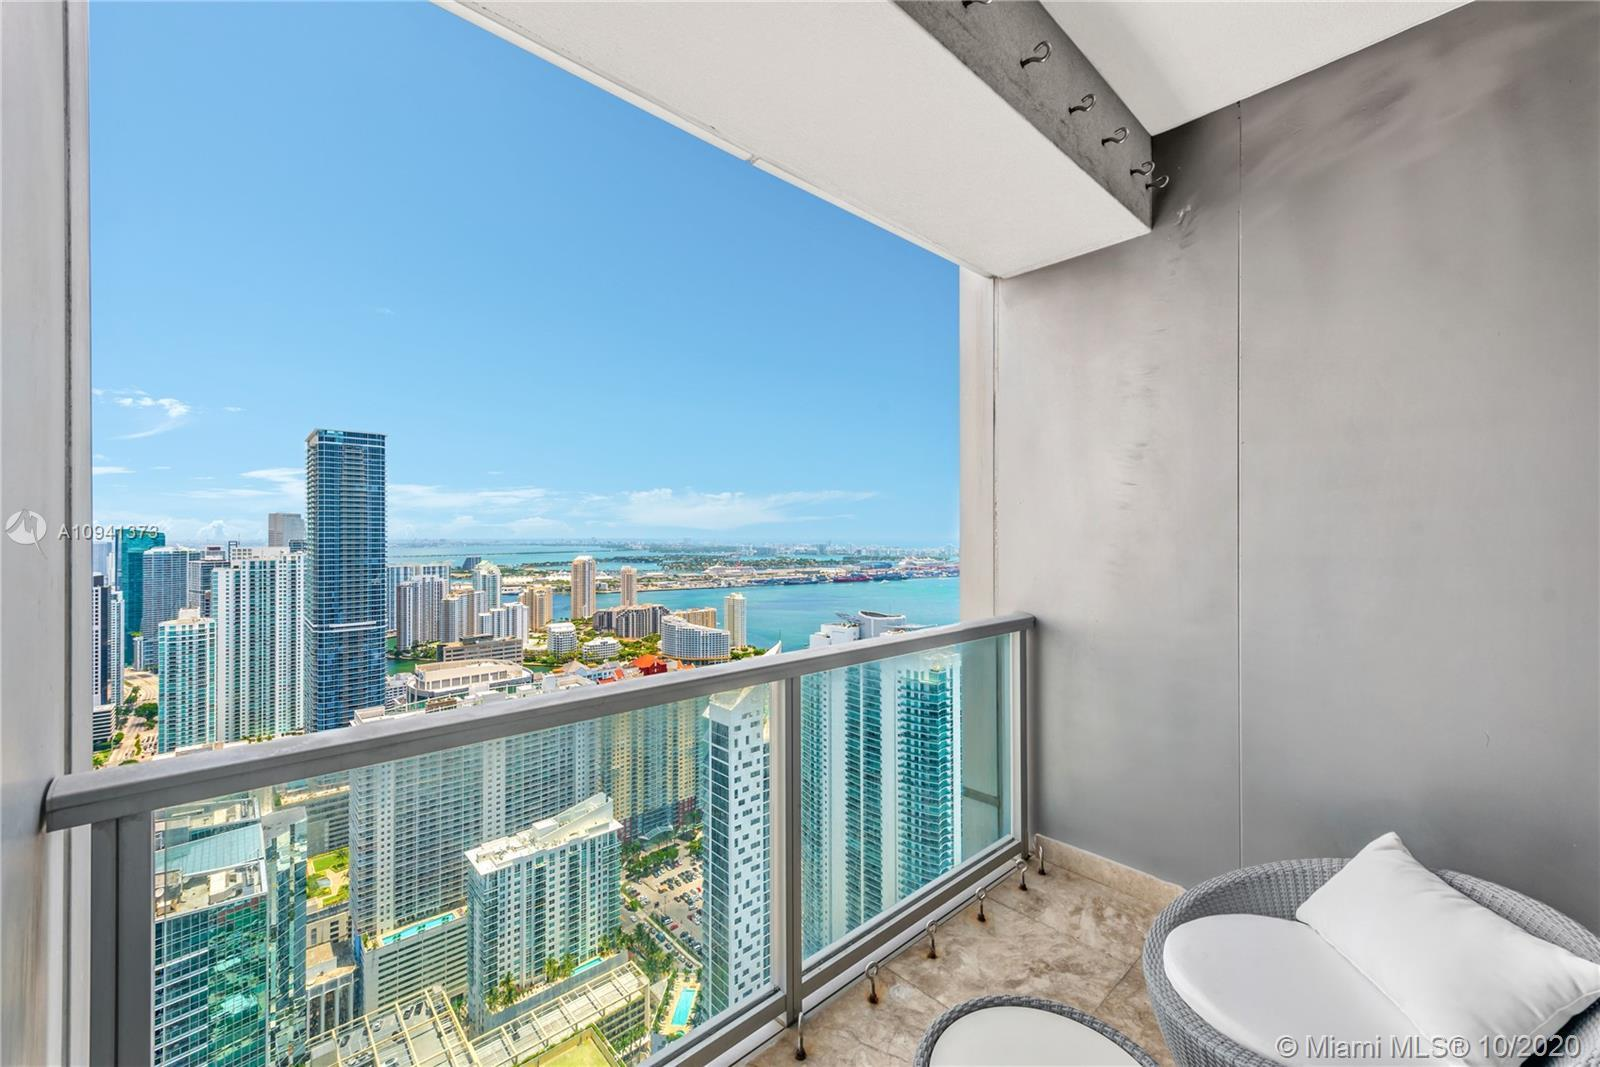 Prestigious Four Seasons Residences Miami… Stunning and incredible views of the bay and city from th